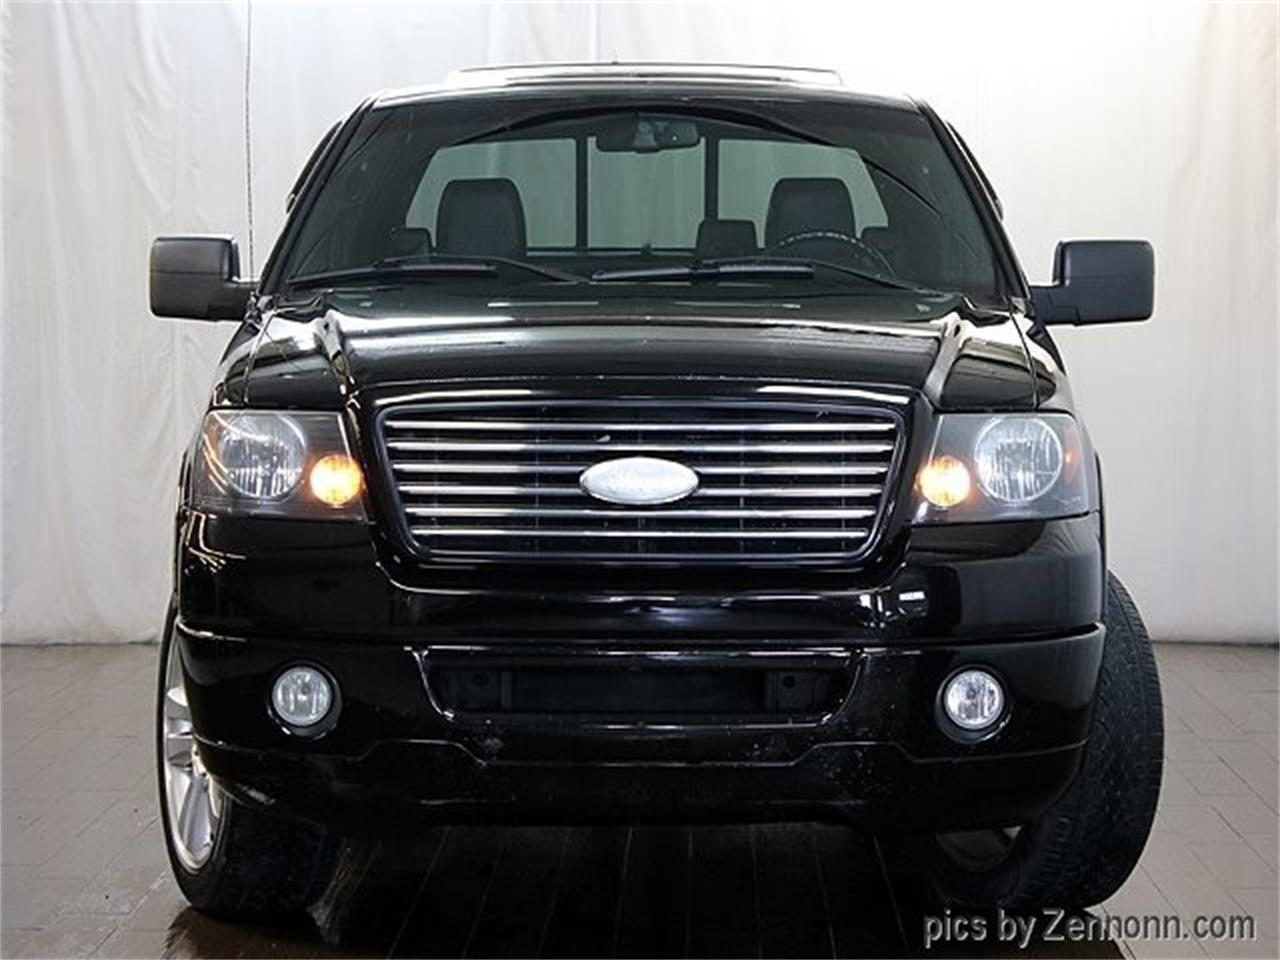 Large Picture of '06 F150 located in Illinois - $12,990.00 Offered by Auto Gallery Chicago - Q2H4